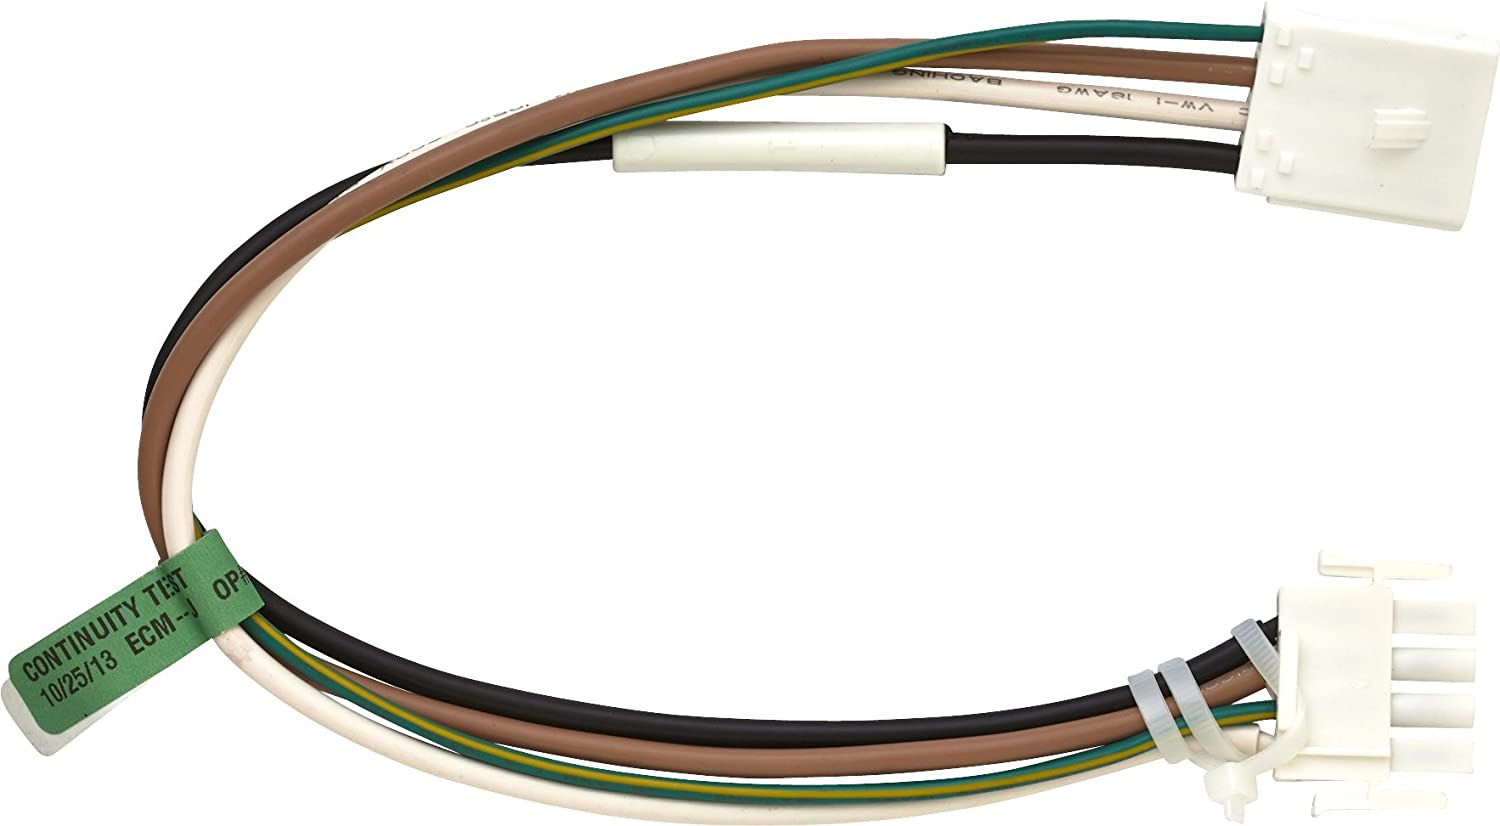 6113euQ4aCL._SL1500_ amazon com whirlpool d7813010 harness icemaker home improvement Wire Harness Assembly at gsmportal.co